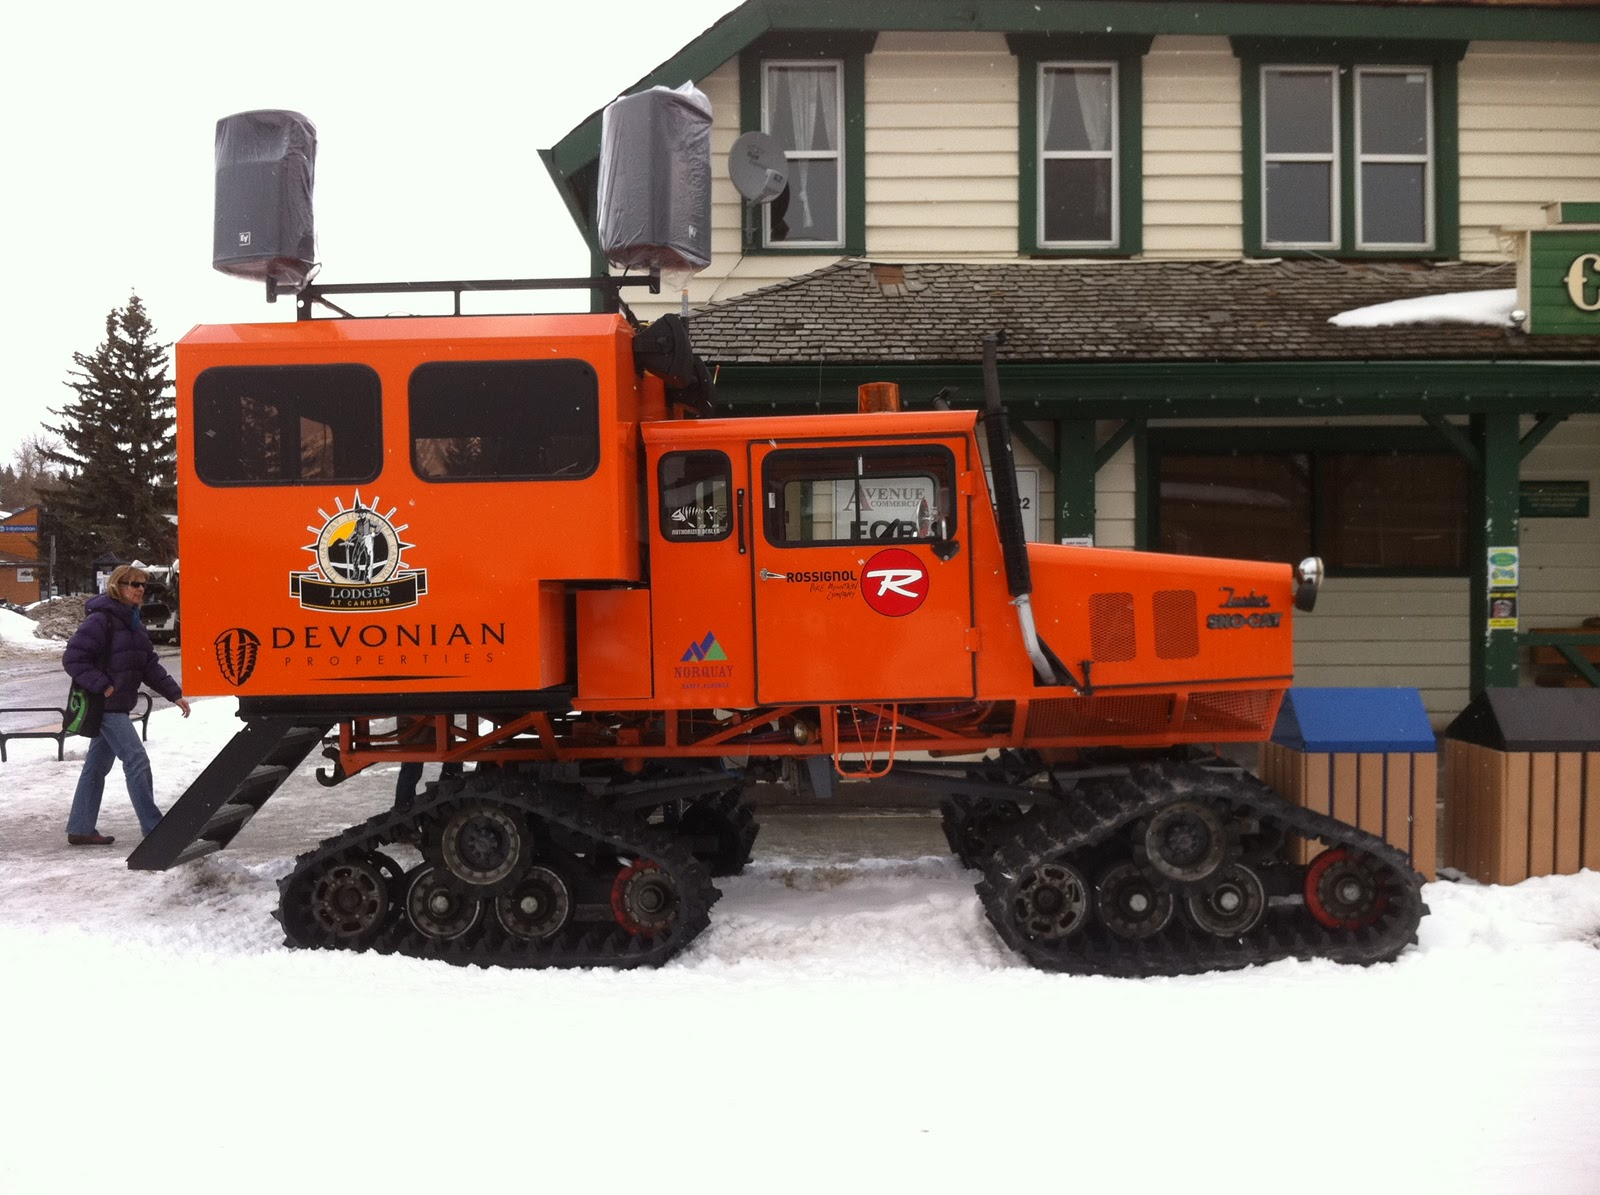 Pin tucker sno cat for sale craigslist image search results on